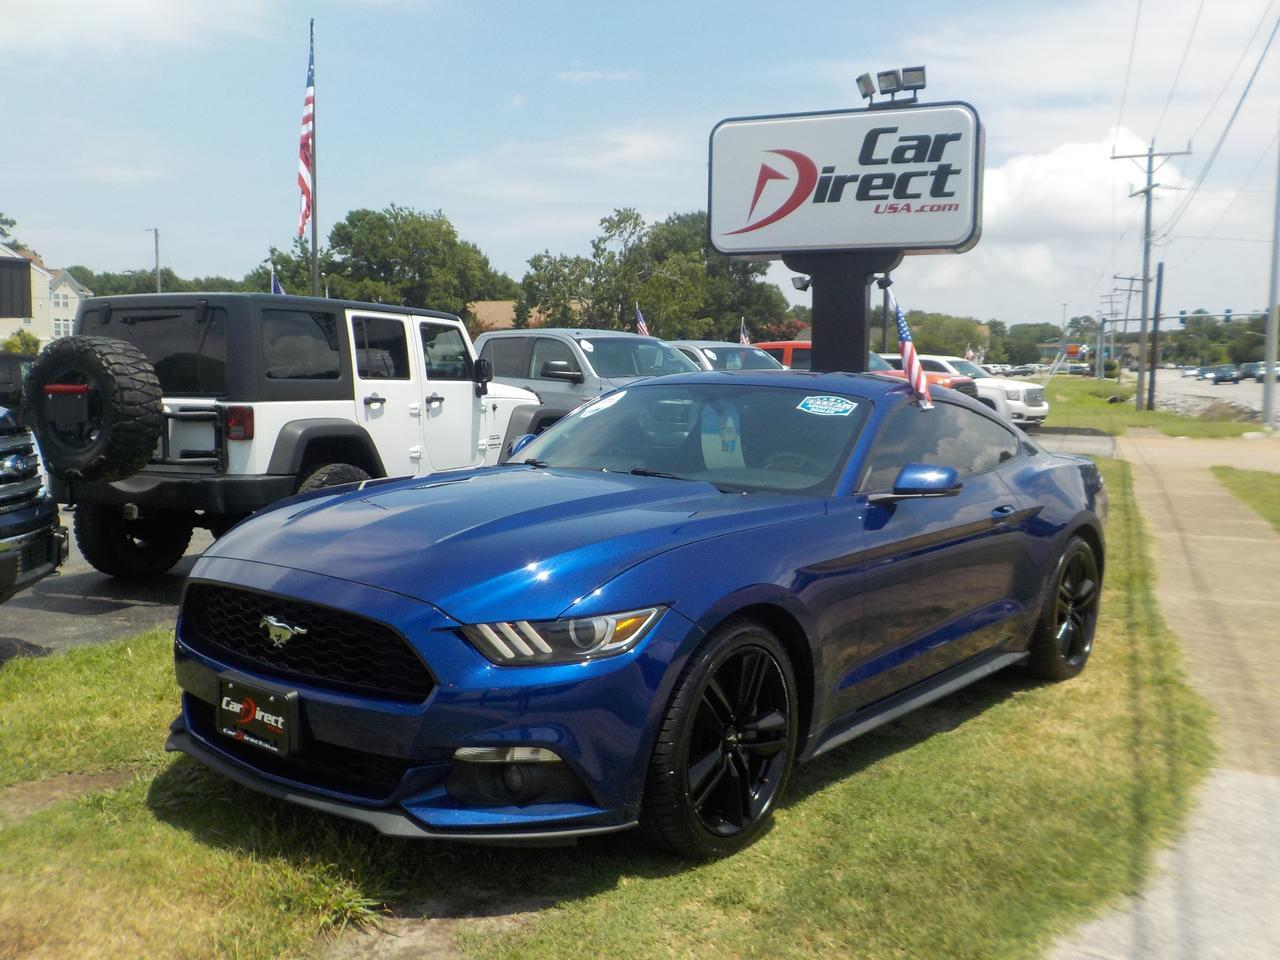 2015 FORD MUSTANG FASTBACK ECOBOOST PREMIUM, HEATED & COOLED SEATS, NAVI, BACKUP CAM, BLUETOOTH, KEYLESS START!